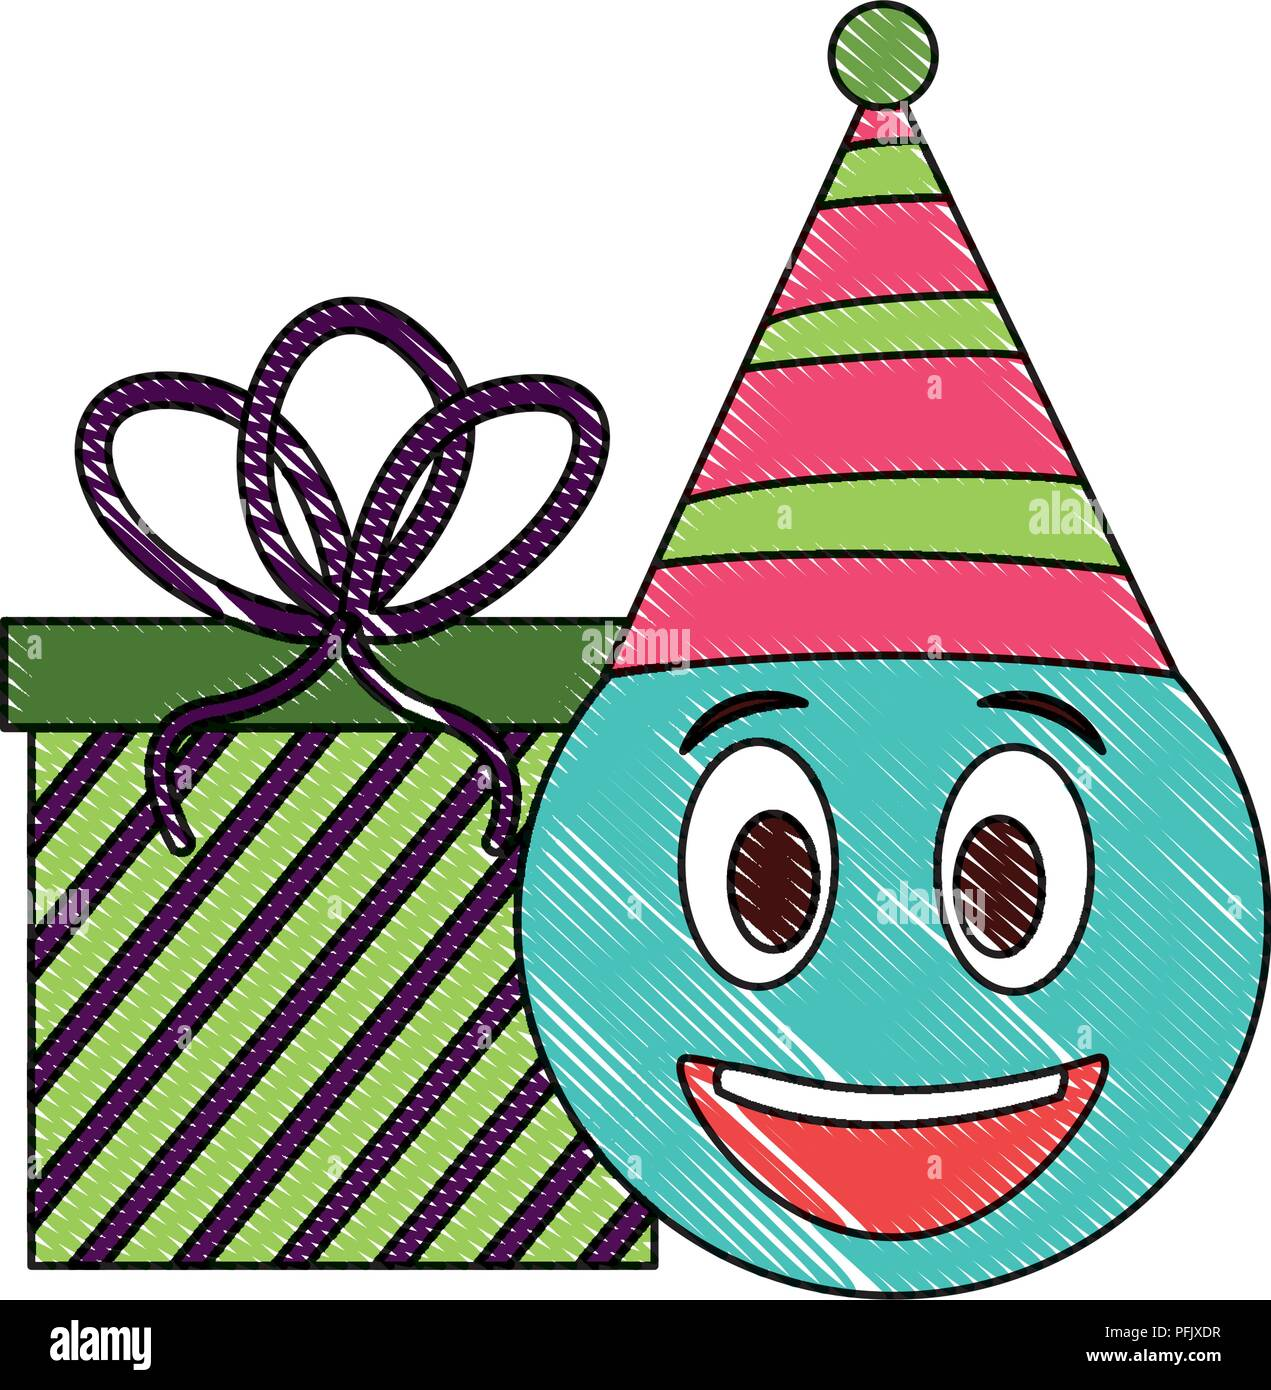 Birthday Emoji Face With Party Hat And Gift Drawing Color Stock